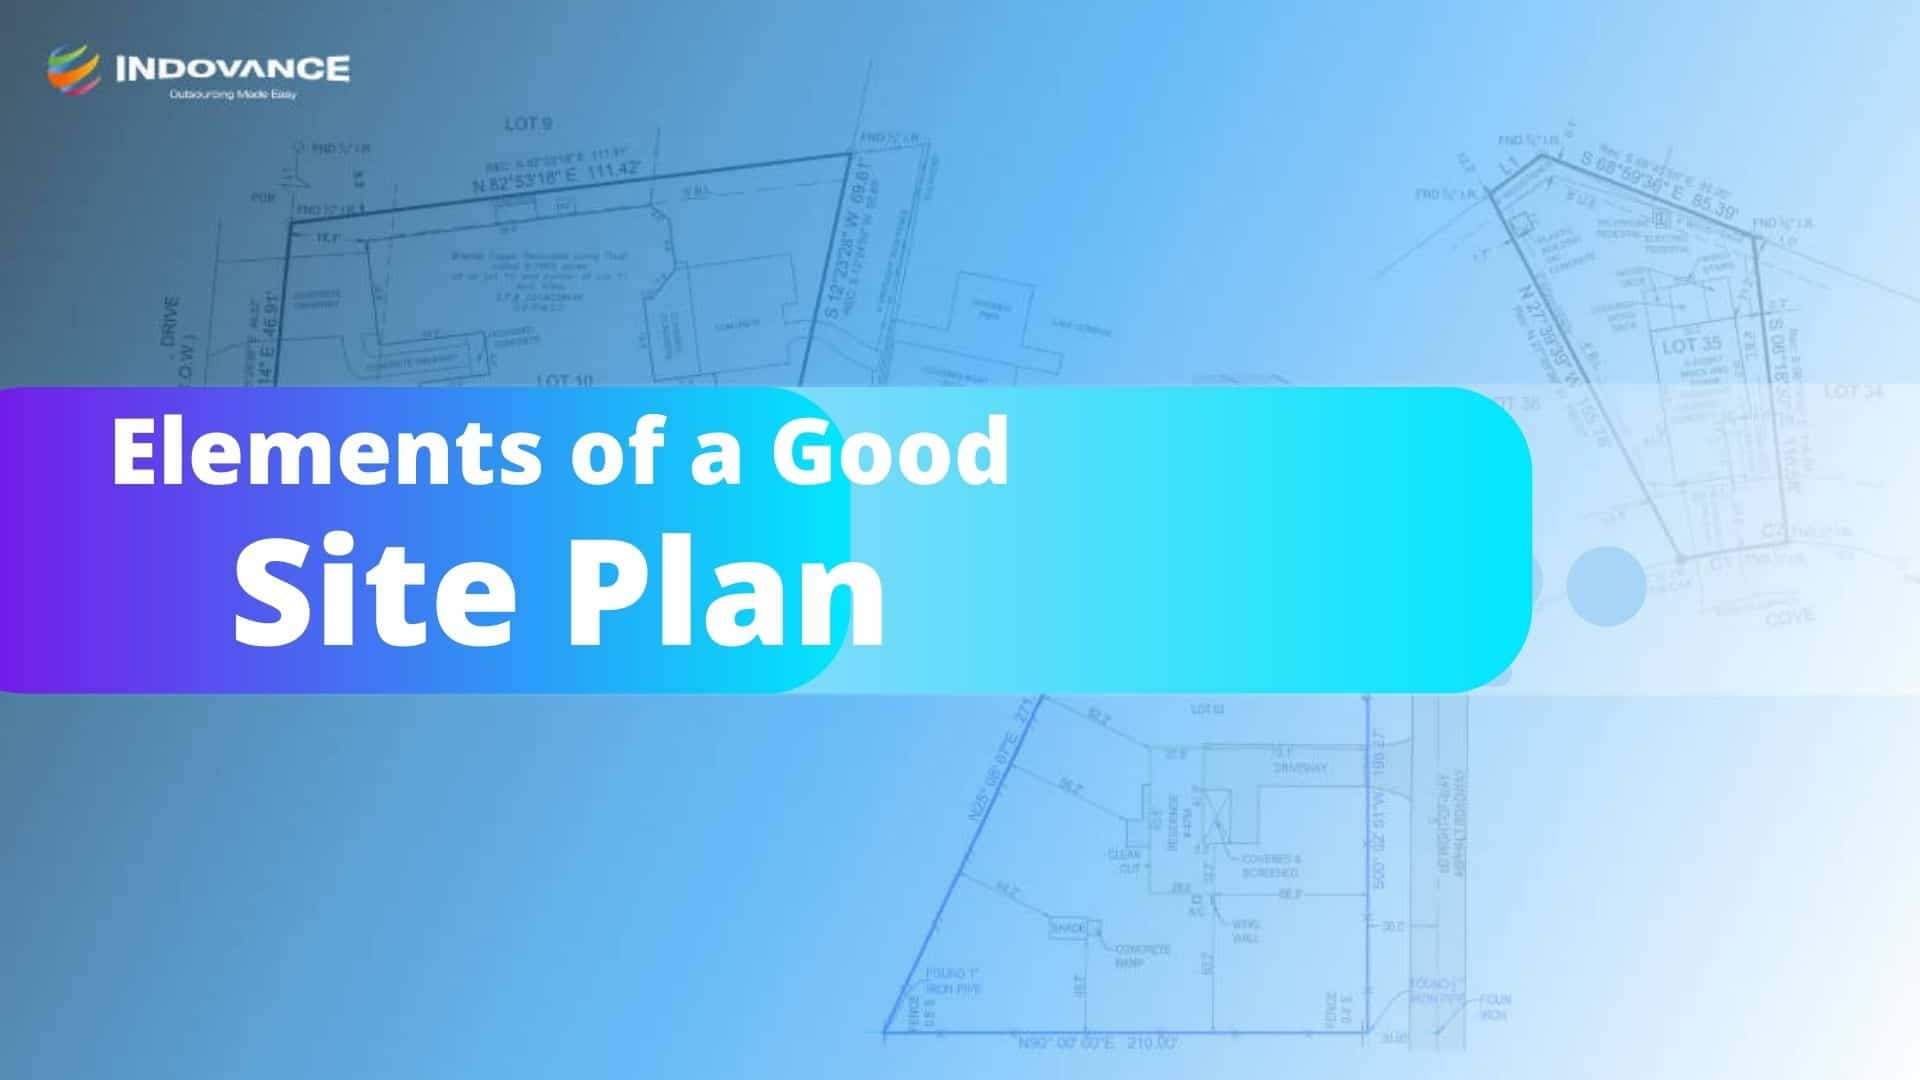 Elements of a Good Site Plan